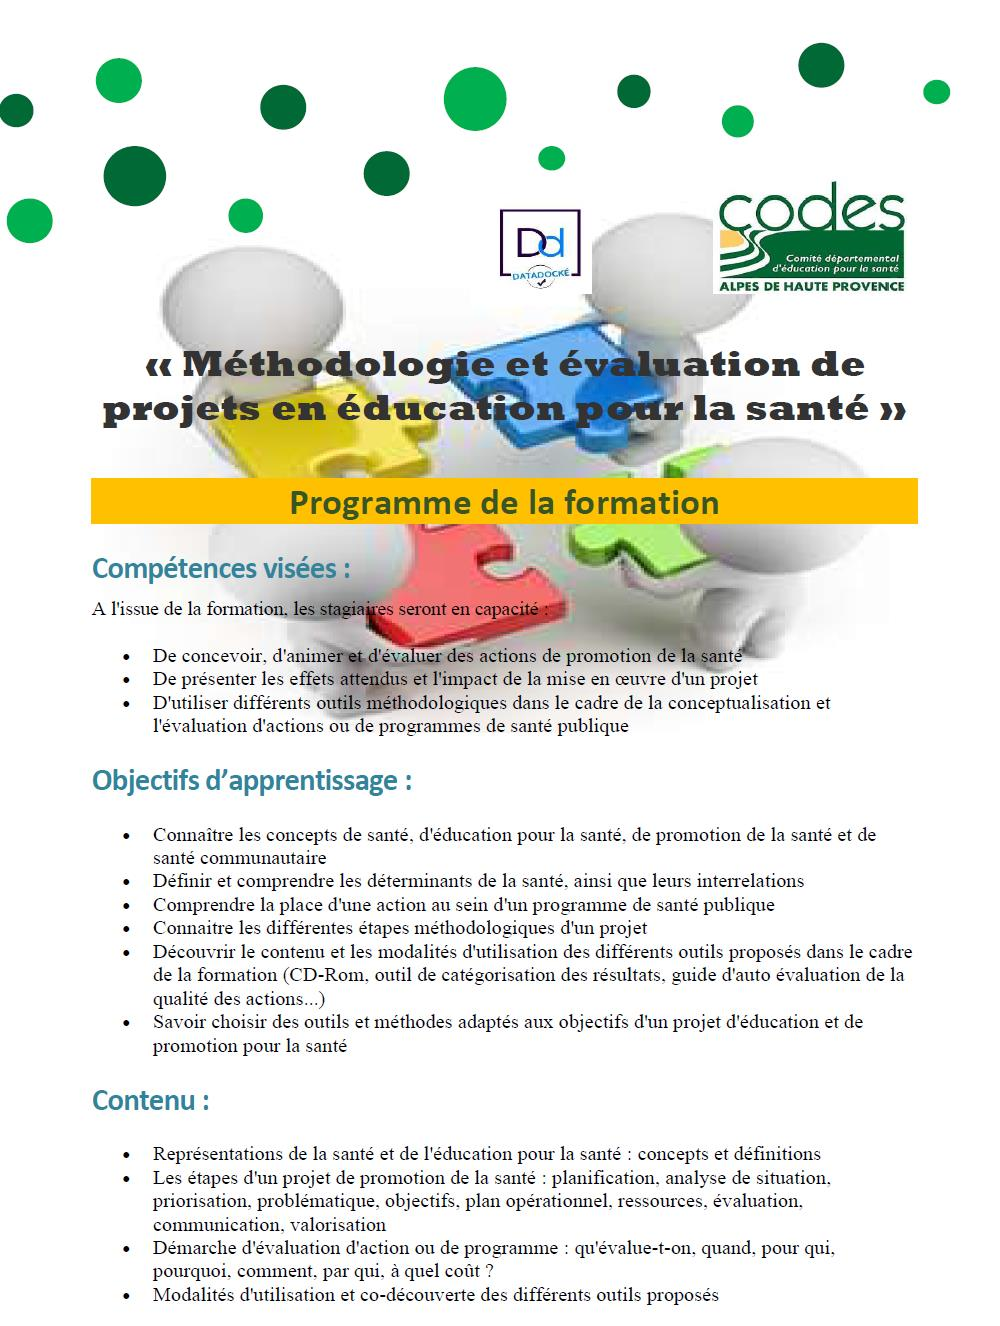 image programme page 1 methodo